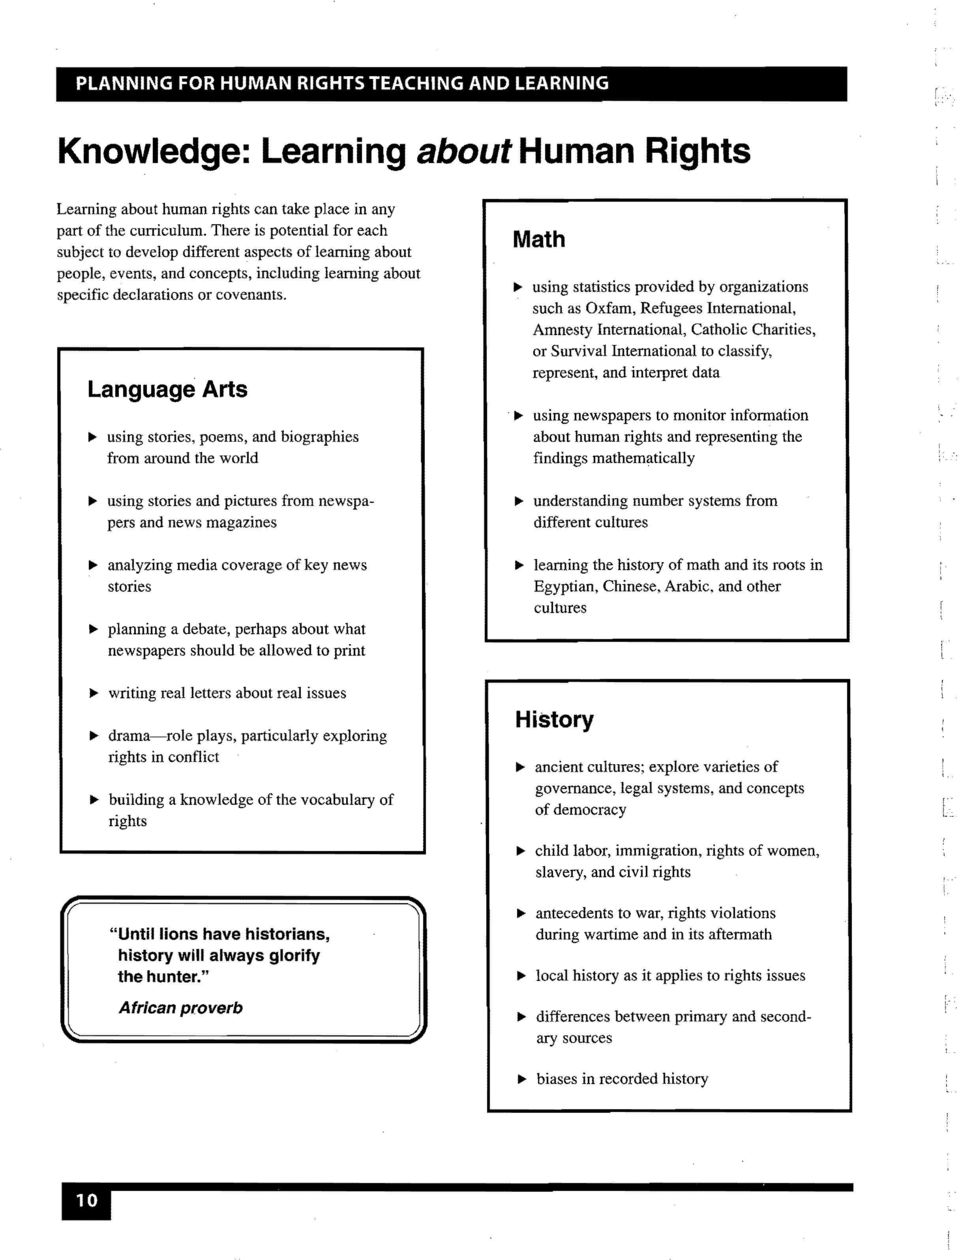 "Language Arts """" using stories, poems, and biographies from around the world """" using stories and pictures from newspapers and news magazines """" analyzing media coverage of key news stories """""